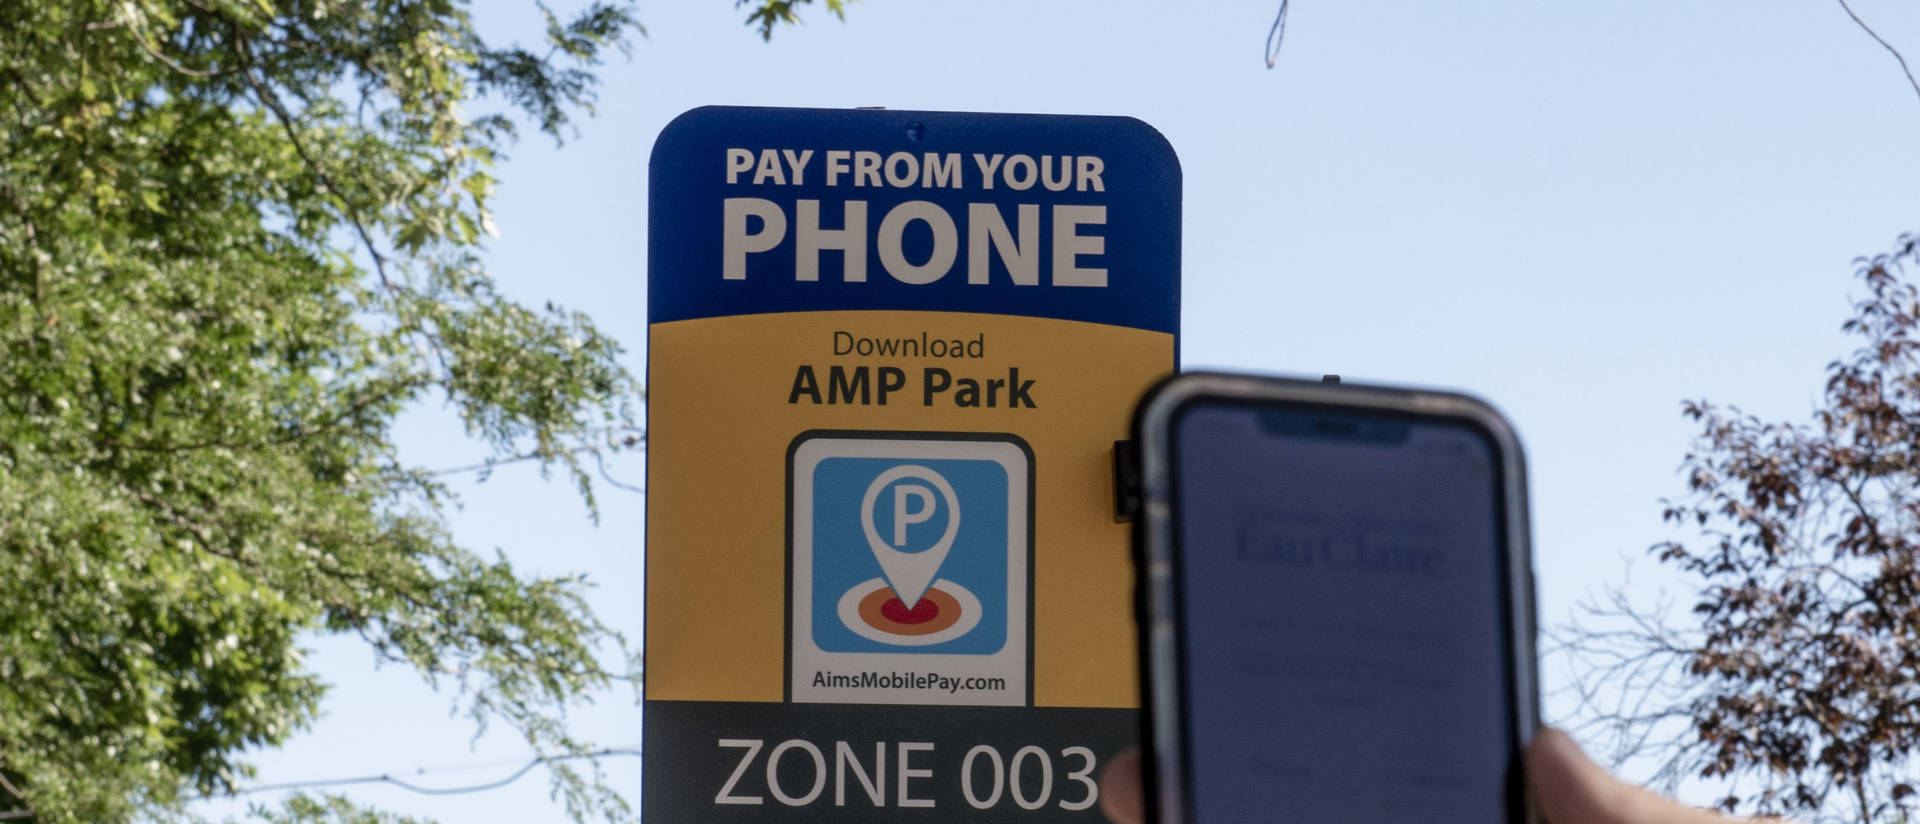 Drivers at UW-Eau Claire can ditch their coins and now pay for timed parking with the use of a mobile app.